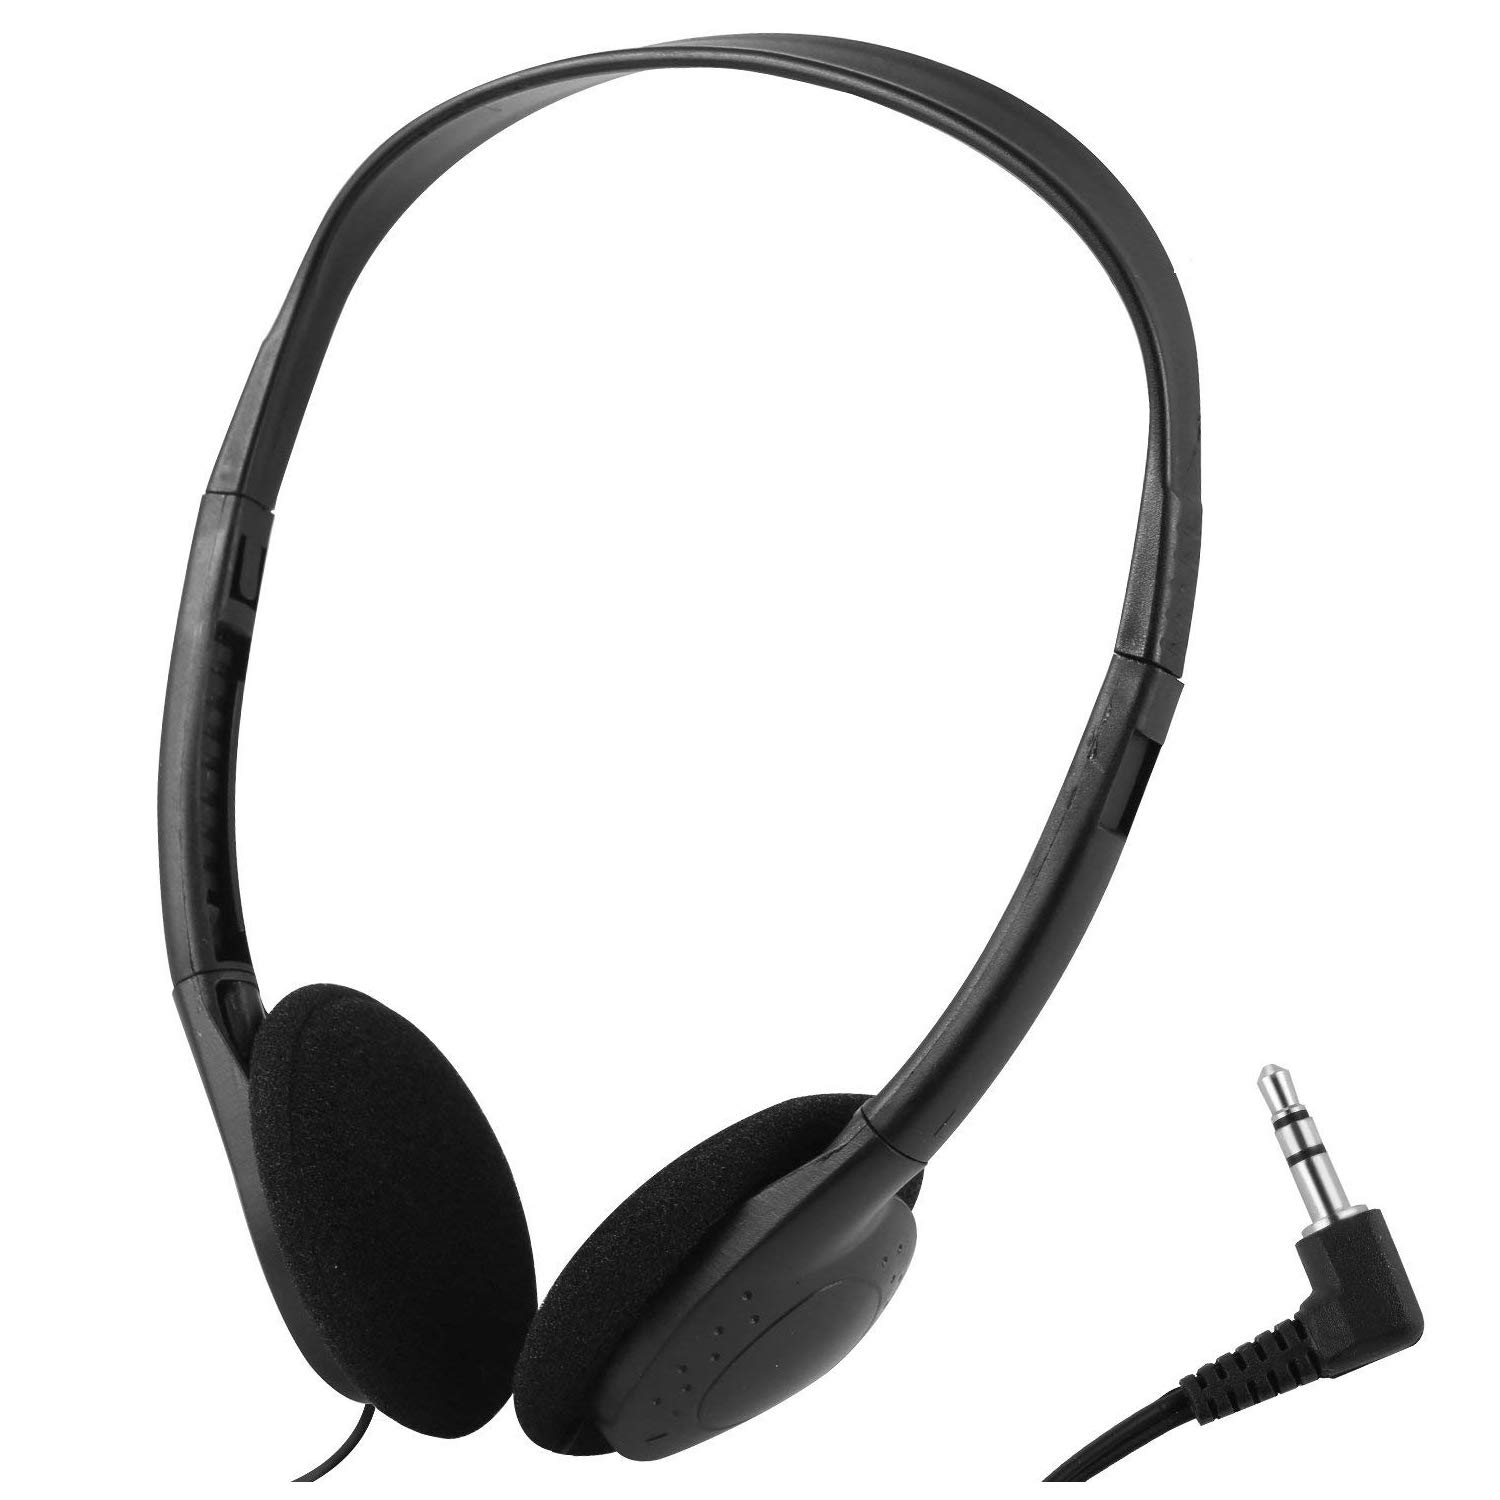 Wholesale Over The Head Low Cost Headphones in Bulk for Classroom, Airplane, Hospiital, Students,Kids and Adults -25Pack Individually Bagged Black